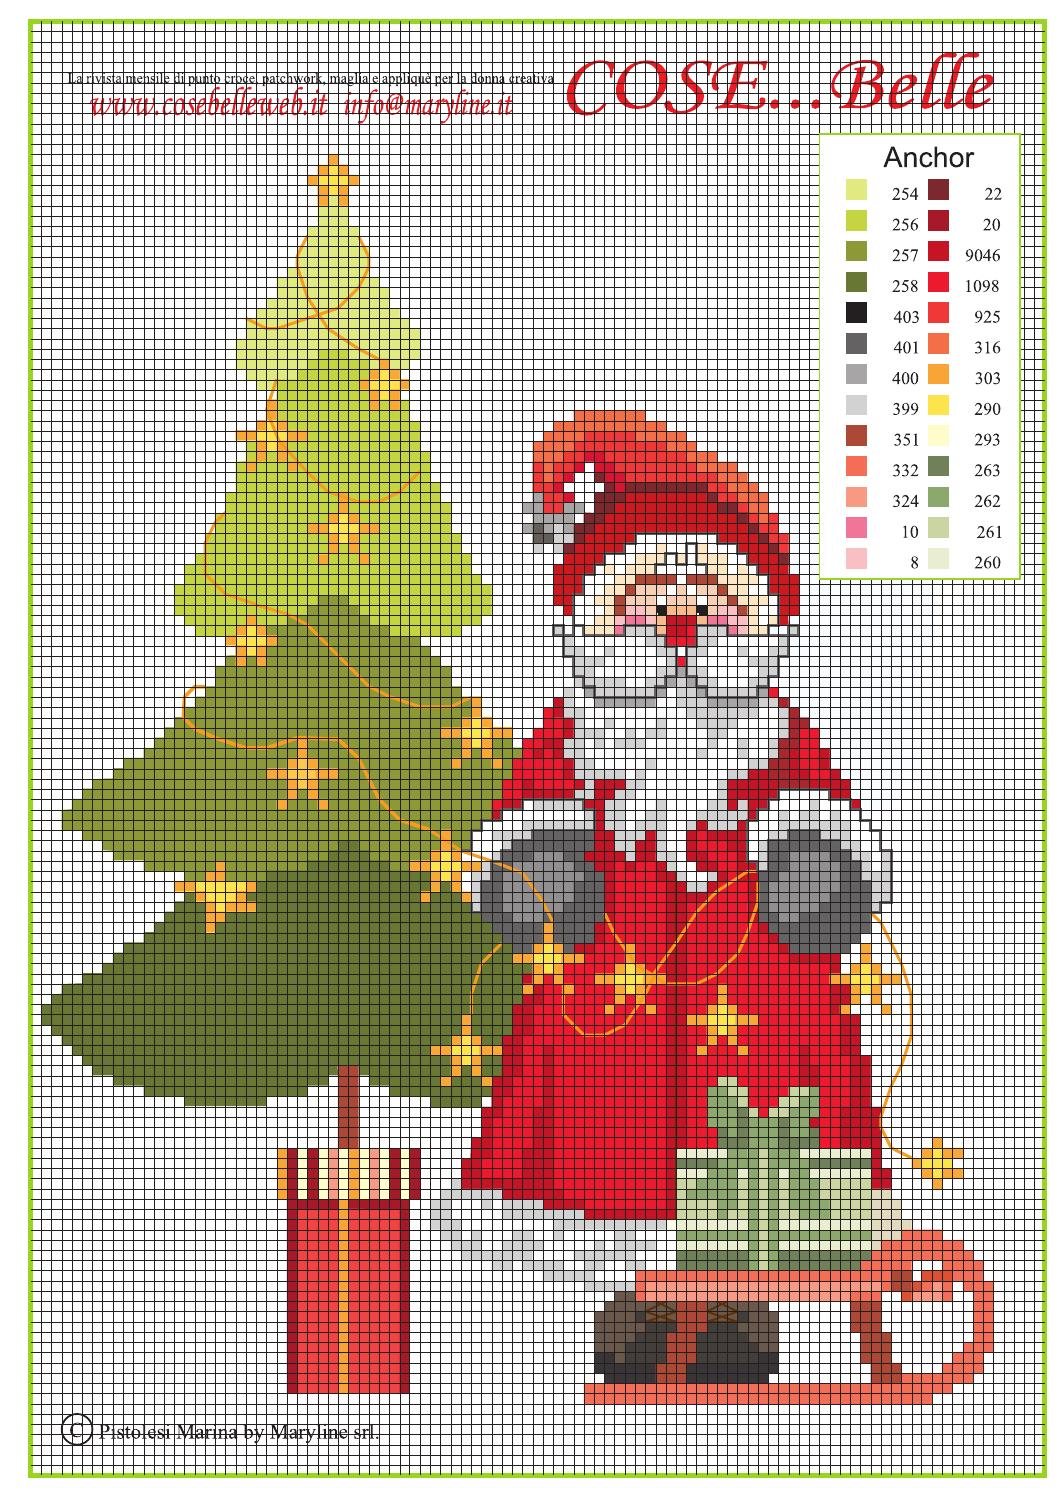 Santa 2014 free cross stitch pattern by maryline s r l for Ape punto croce schema